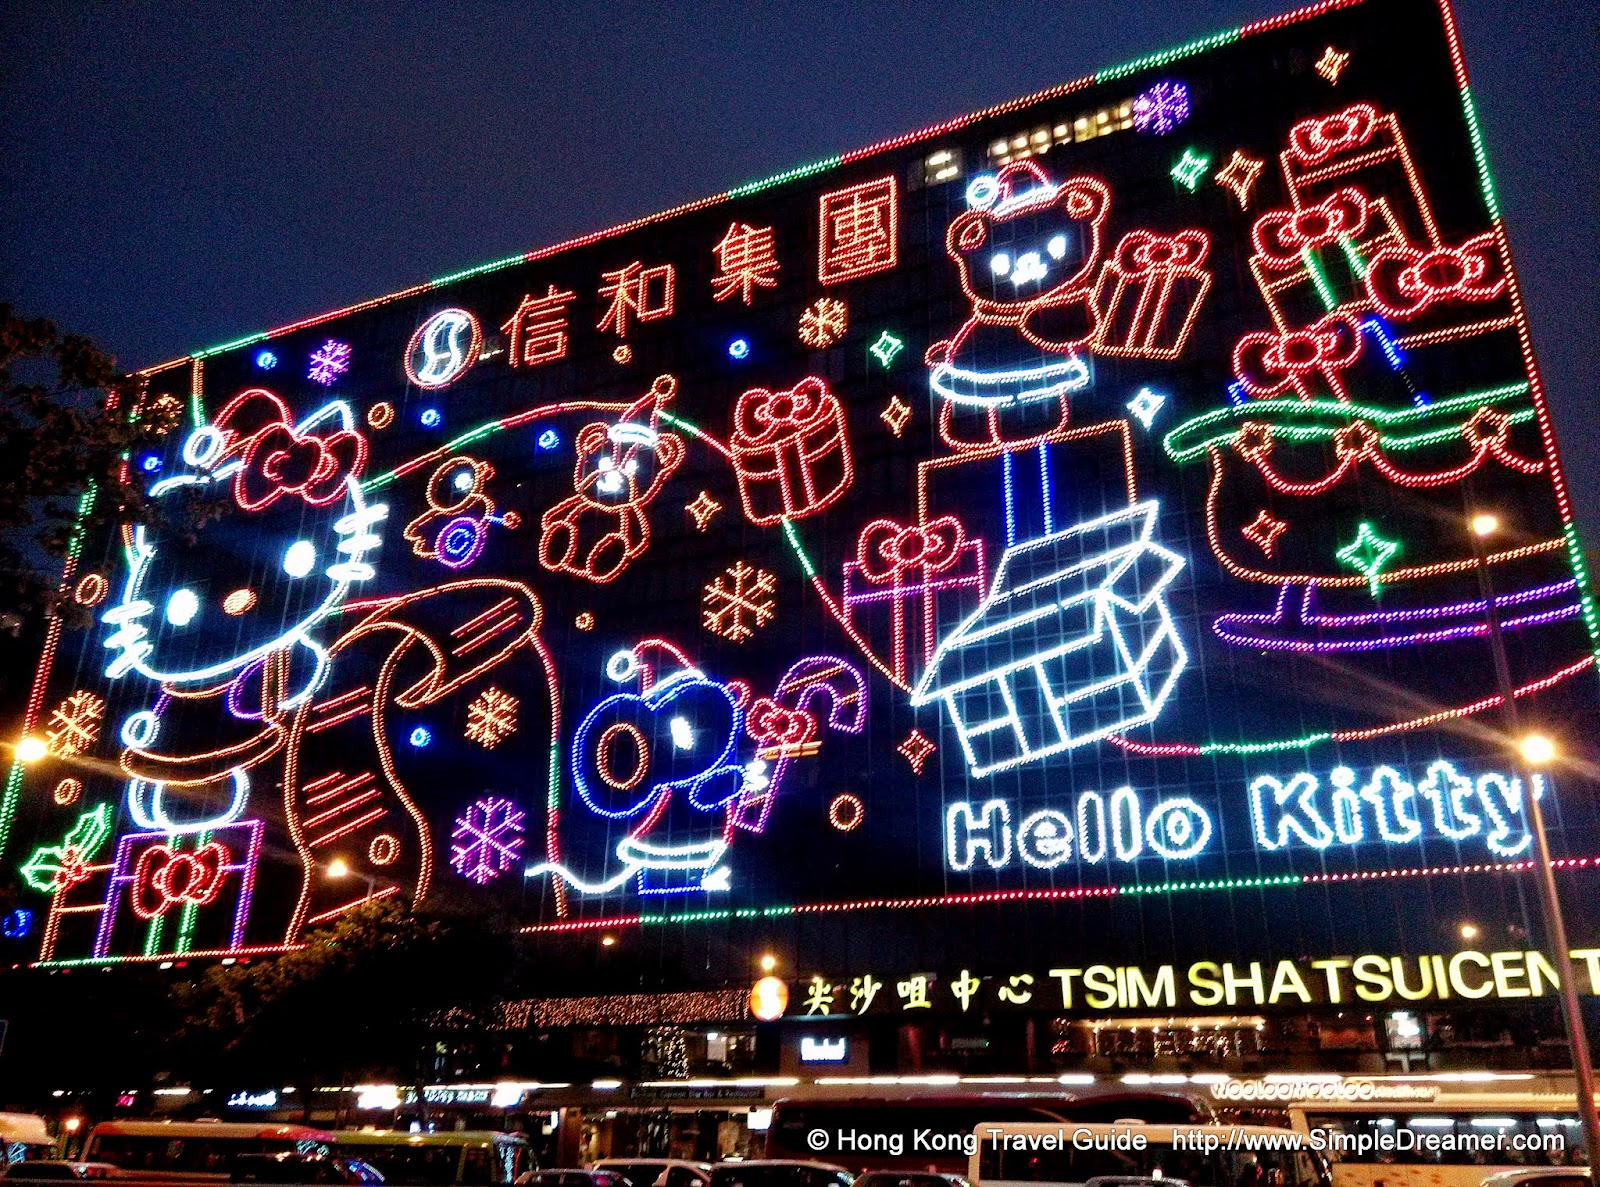 http://www.simpledreamer.com/2014/12/tst-east-hello-kitty-christmas-lights.html